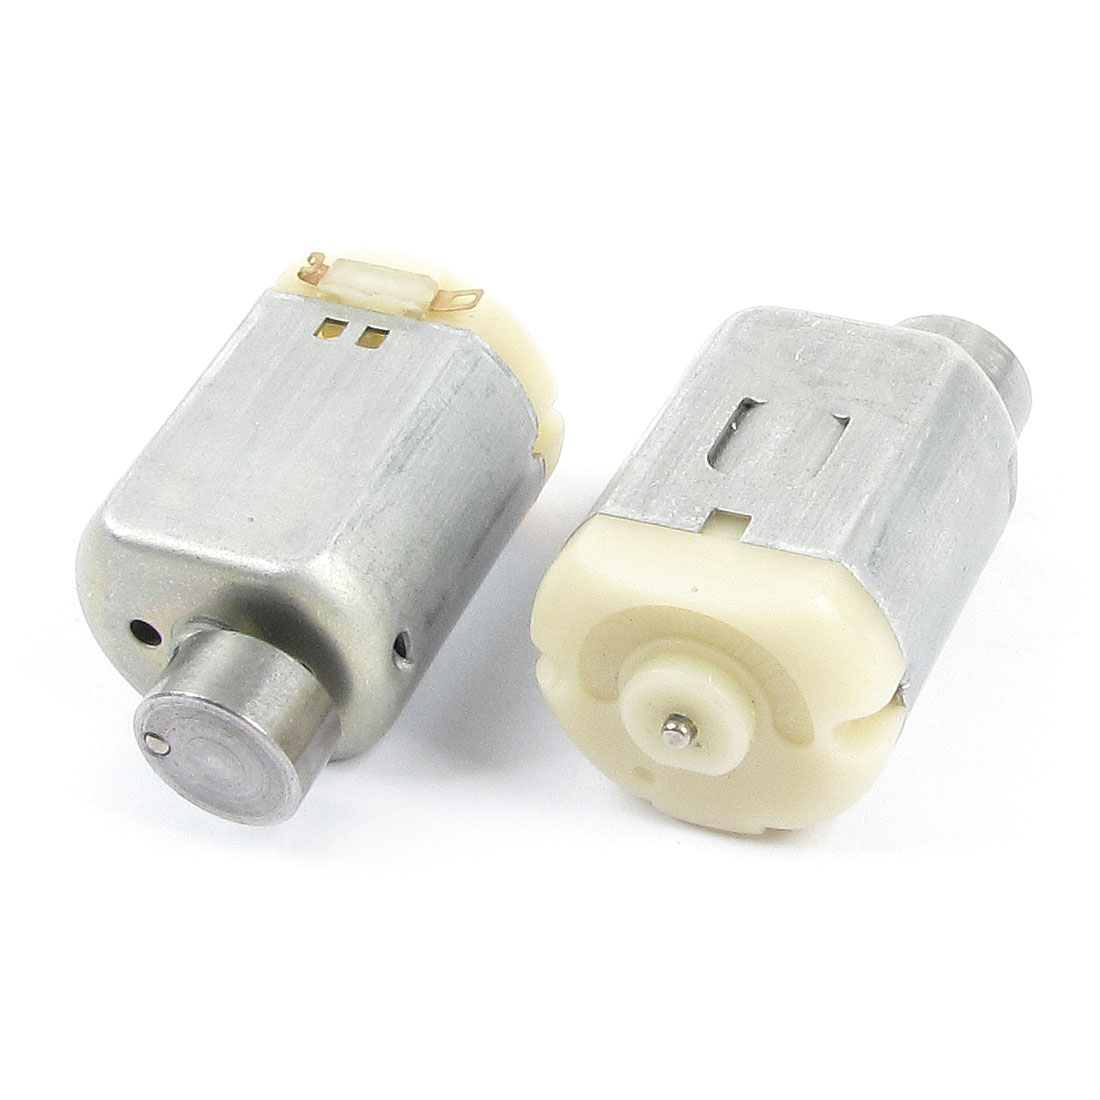 2pcs-Magnetic-Vibrating-Vibration-Micro-Motor-17500RPM-6VDC